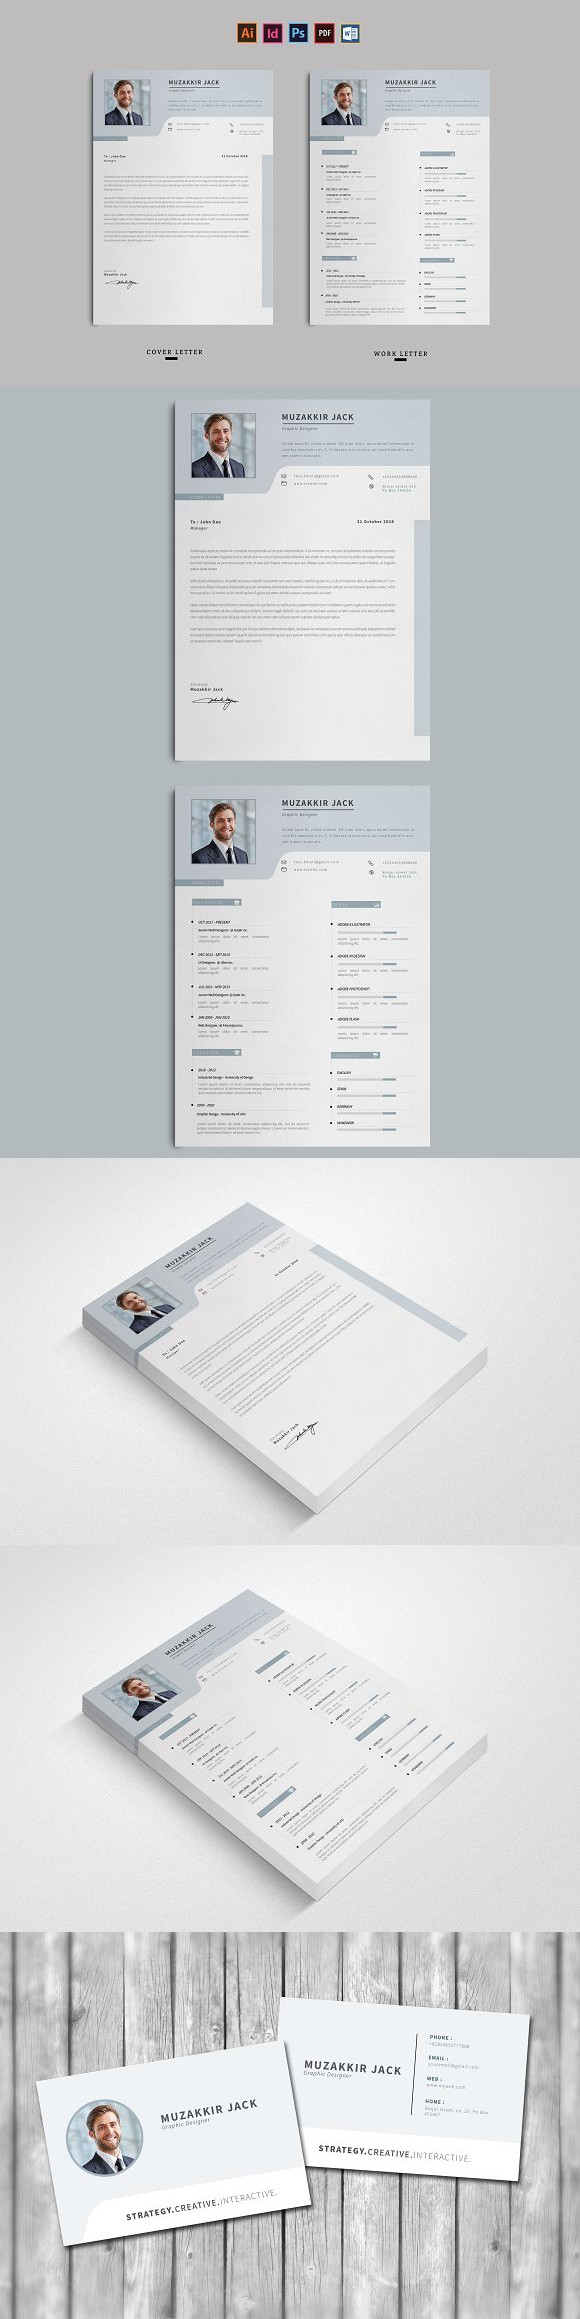 Resume Resume Templates Resume Templates Pinterest Template